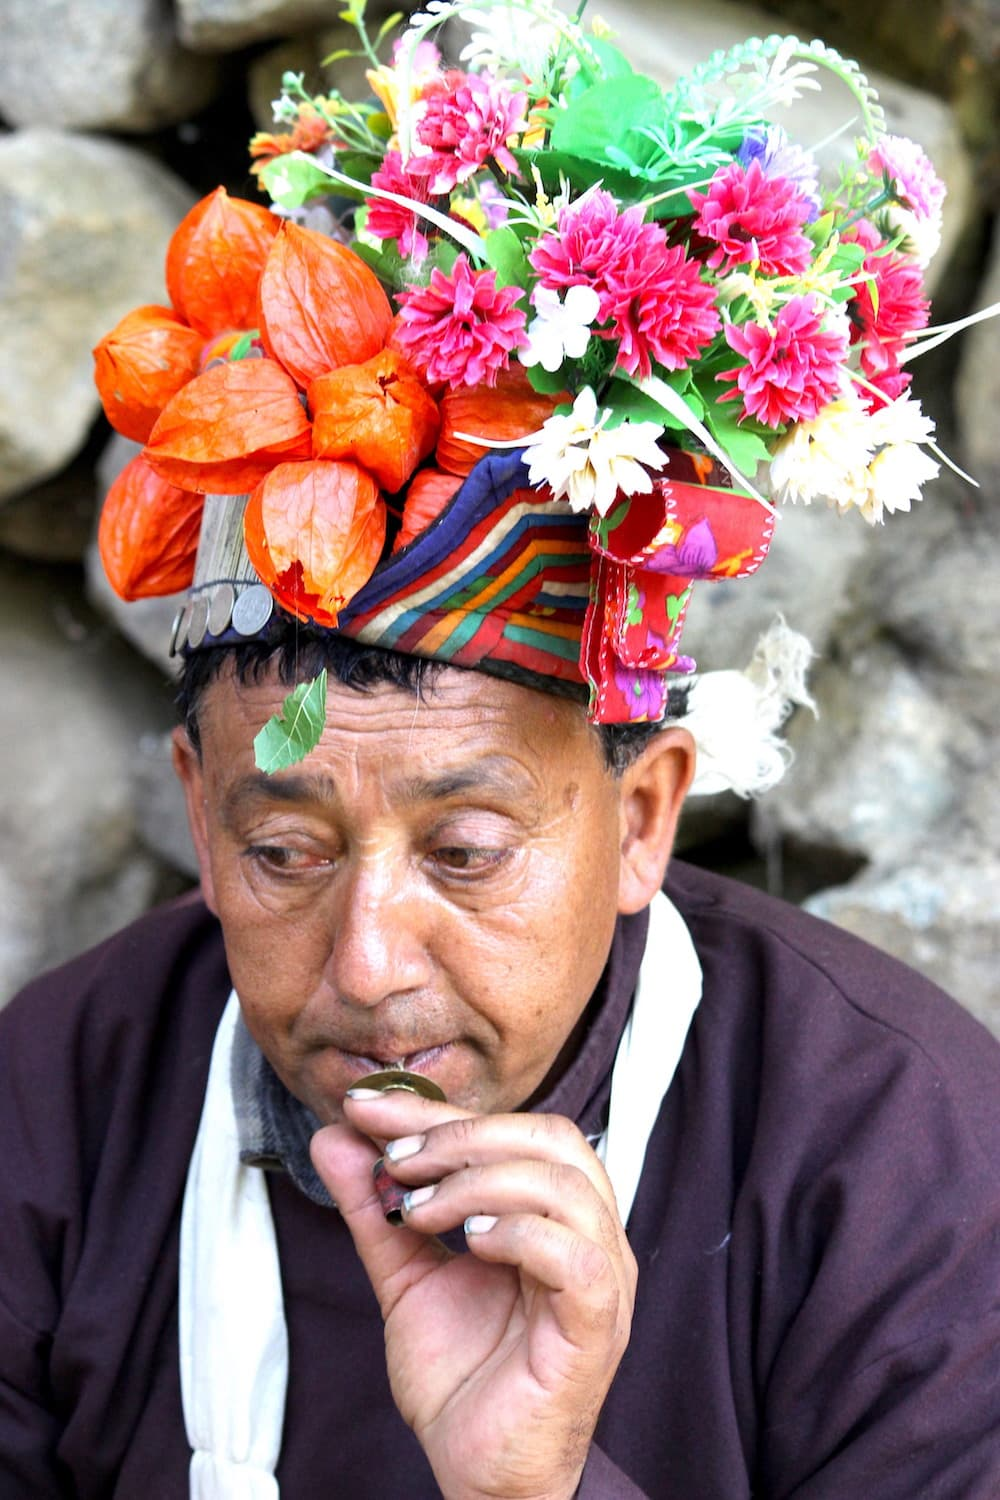 ladakh flower ornament india